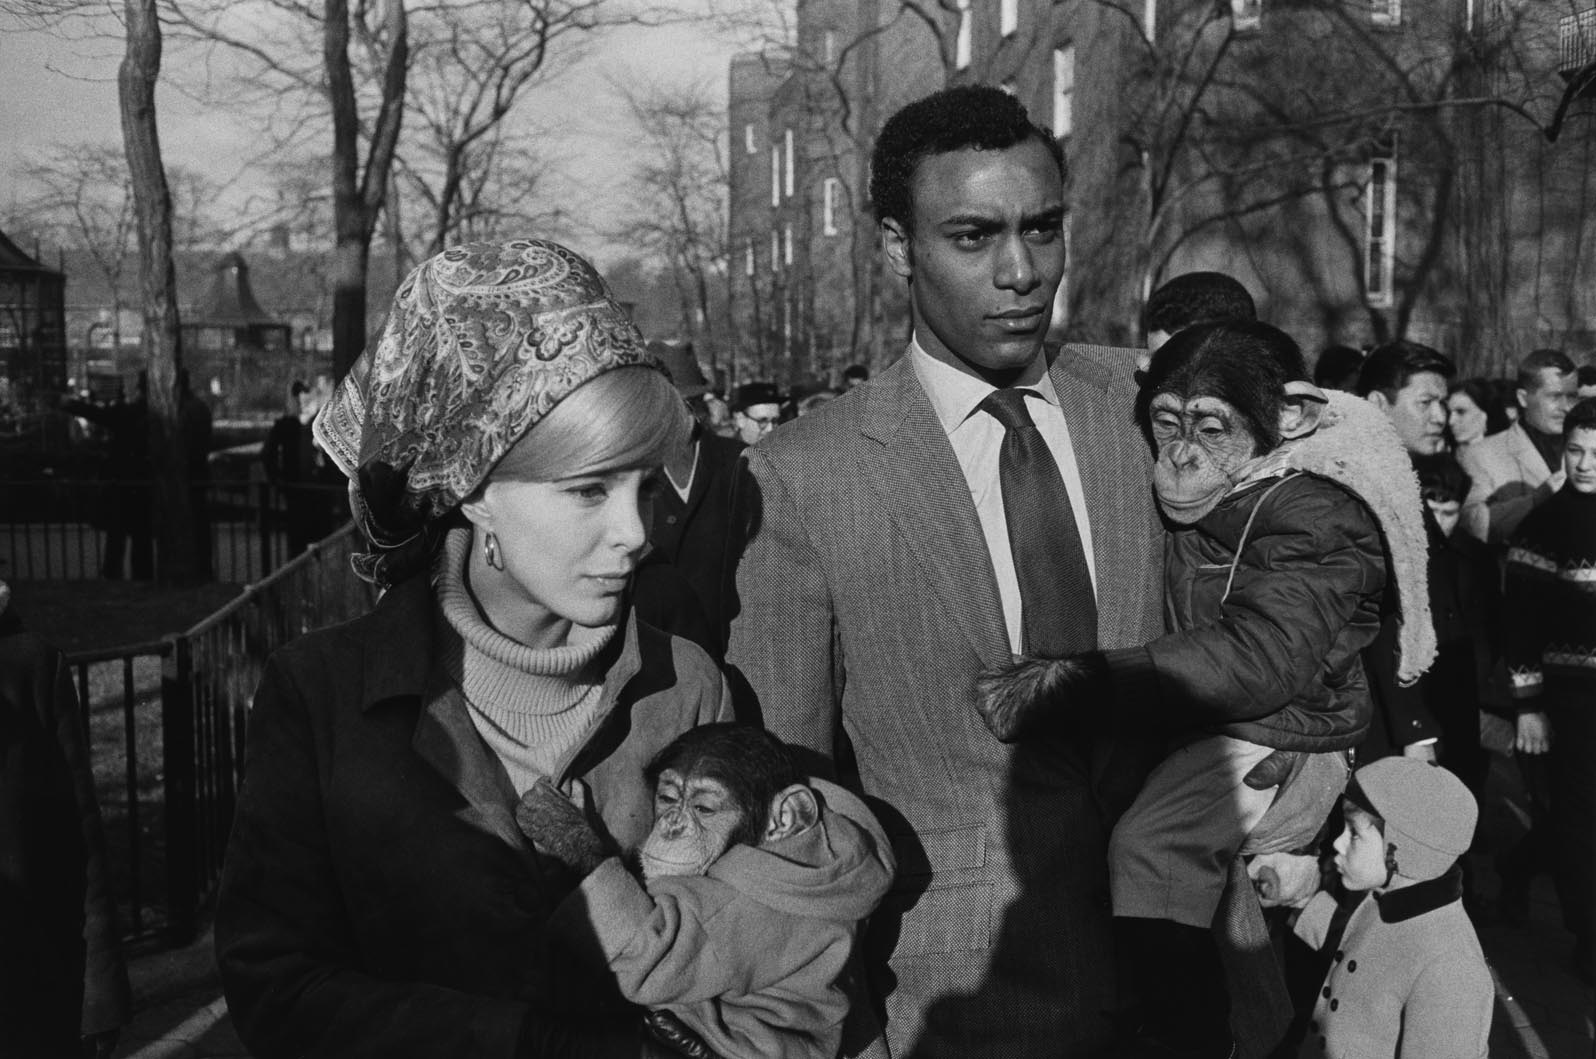 ob_b6551e_garry-winogrand-1